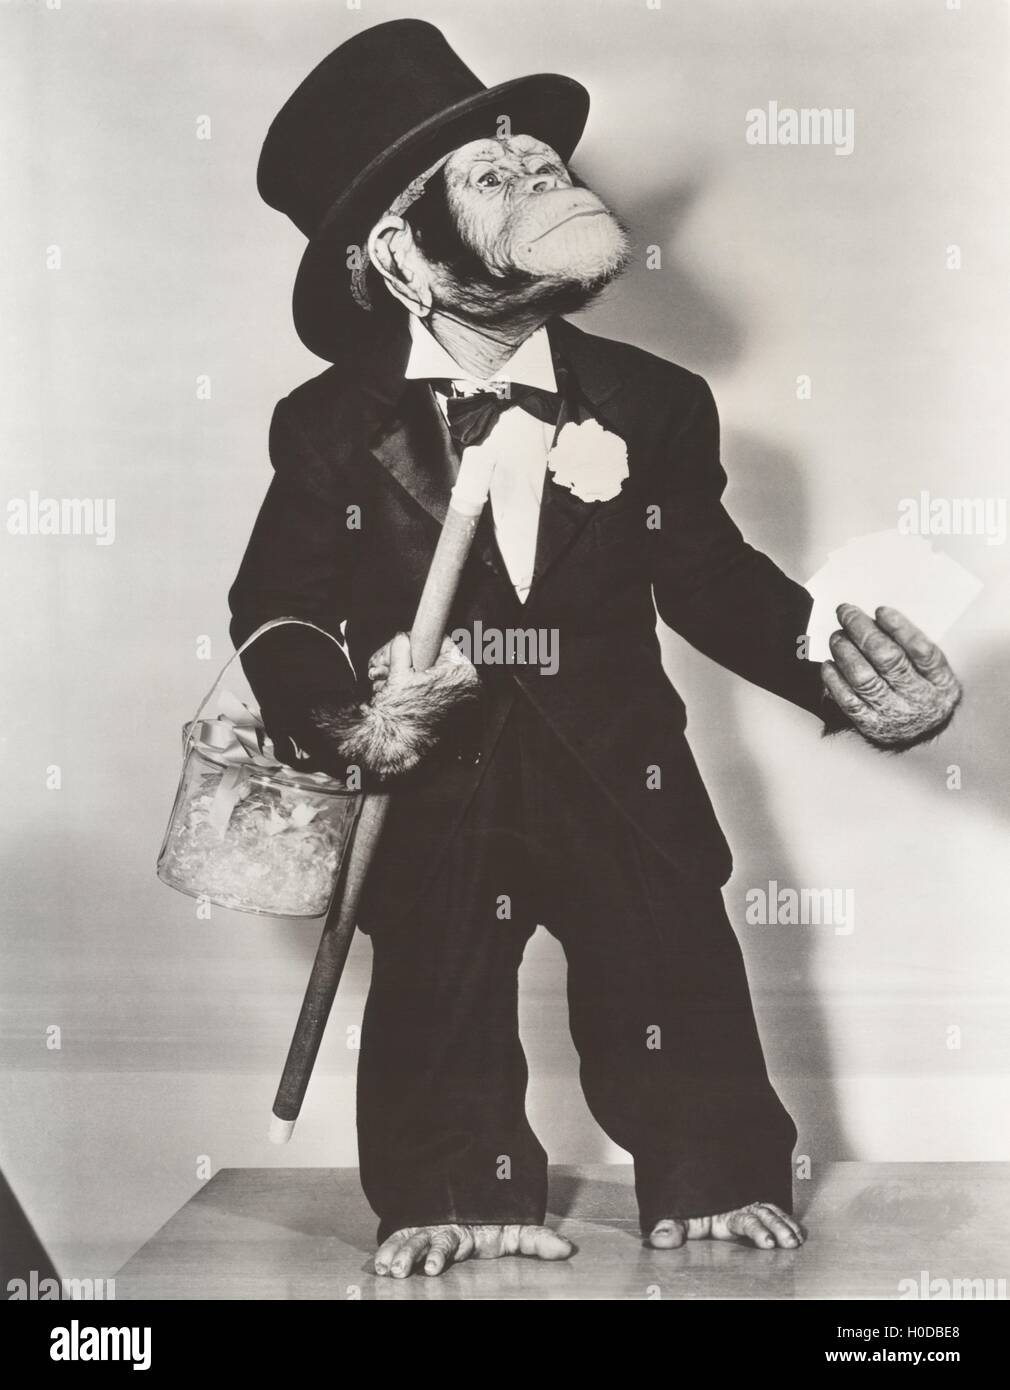 Monkey dressed as a groom - Stock Image